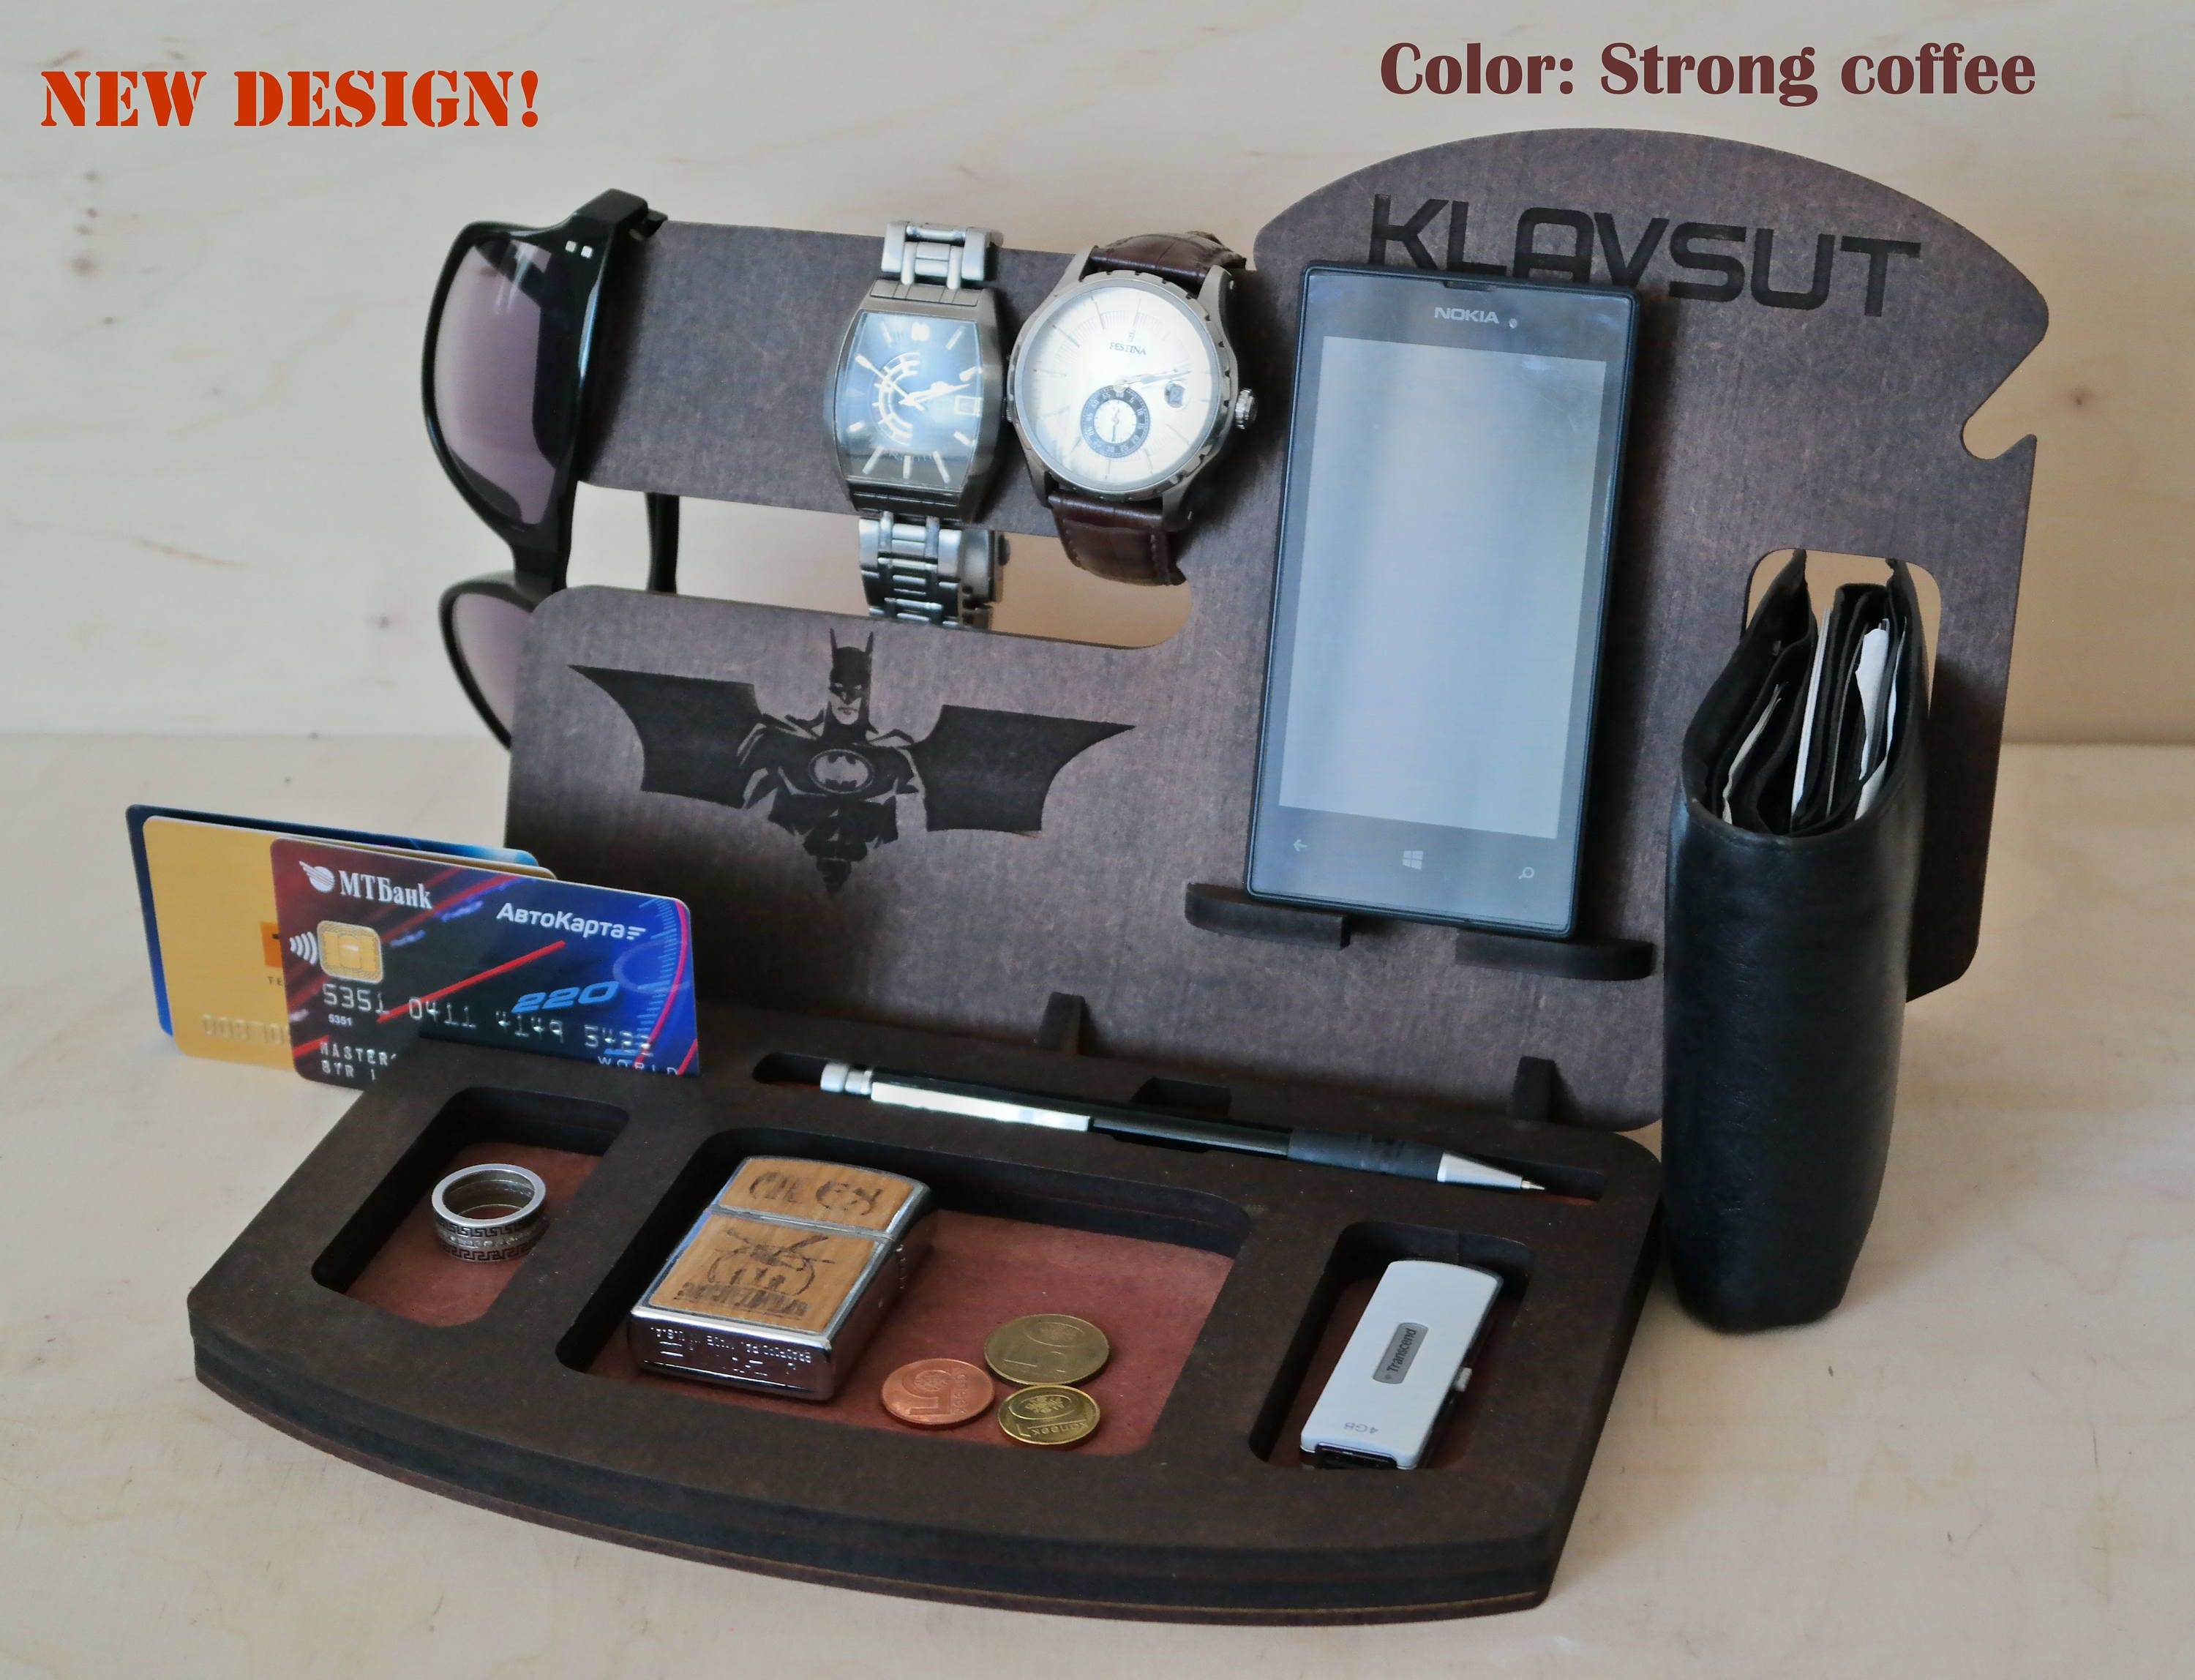 Iphone docking station mens gift ideas unique for